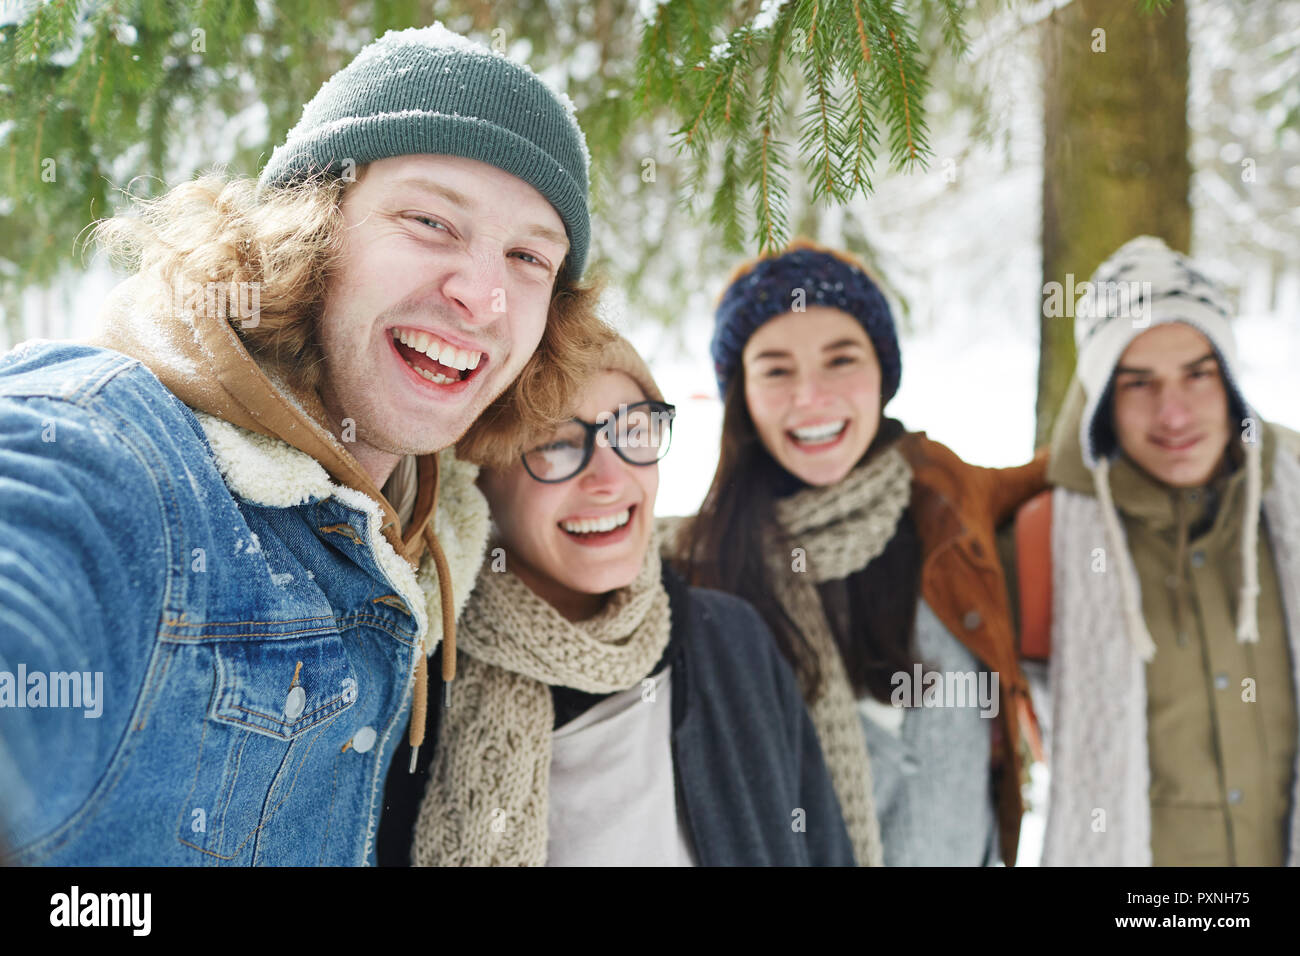 Portrait of four happy young people enjoying time in winter resort and laughing merrily looking at camera, focus on man in front - Stock Image